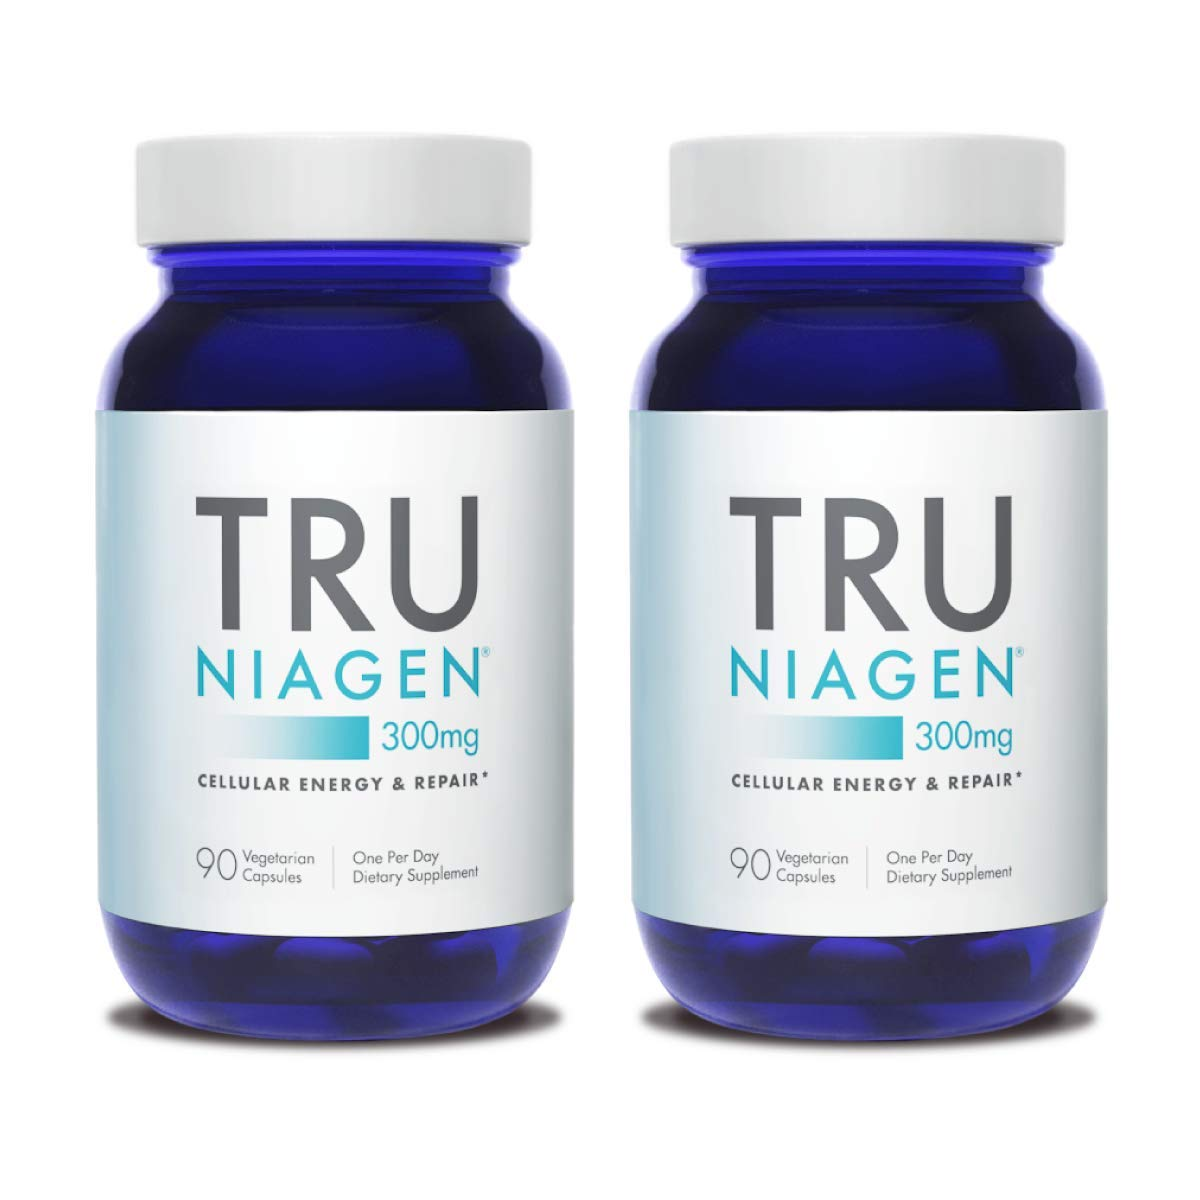 TRU NIAGEN Nicotinamide Riboside - Patented NAD Booster for Cellular Repair & Energy, 300mg Vegetarian Capsules, 300mg Per Serving, 90 Day Bottle (2 Pack)